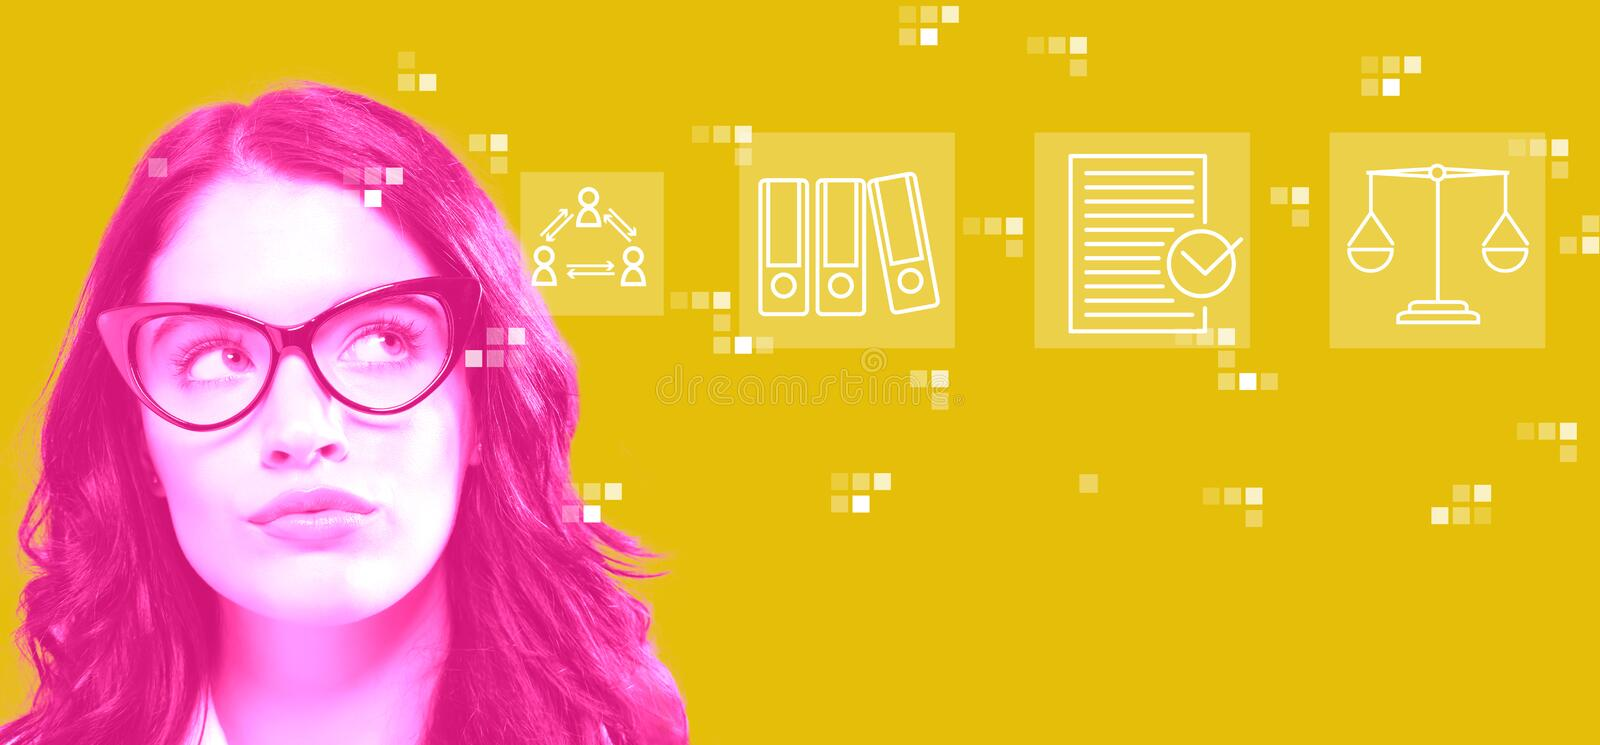 Compliance theme with young businesswoman royalty free stock photo